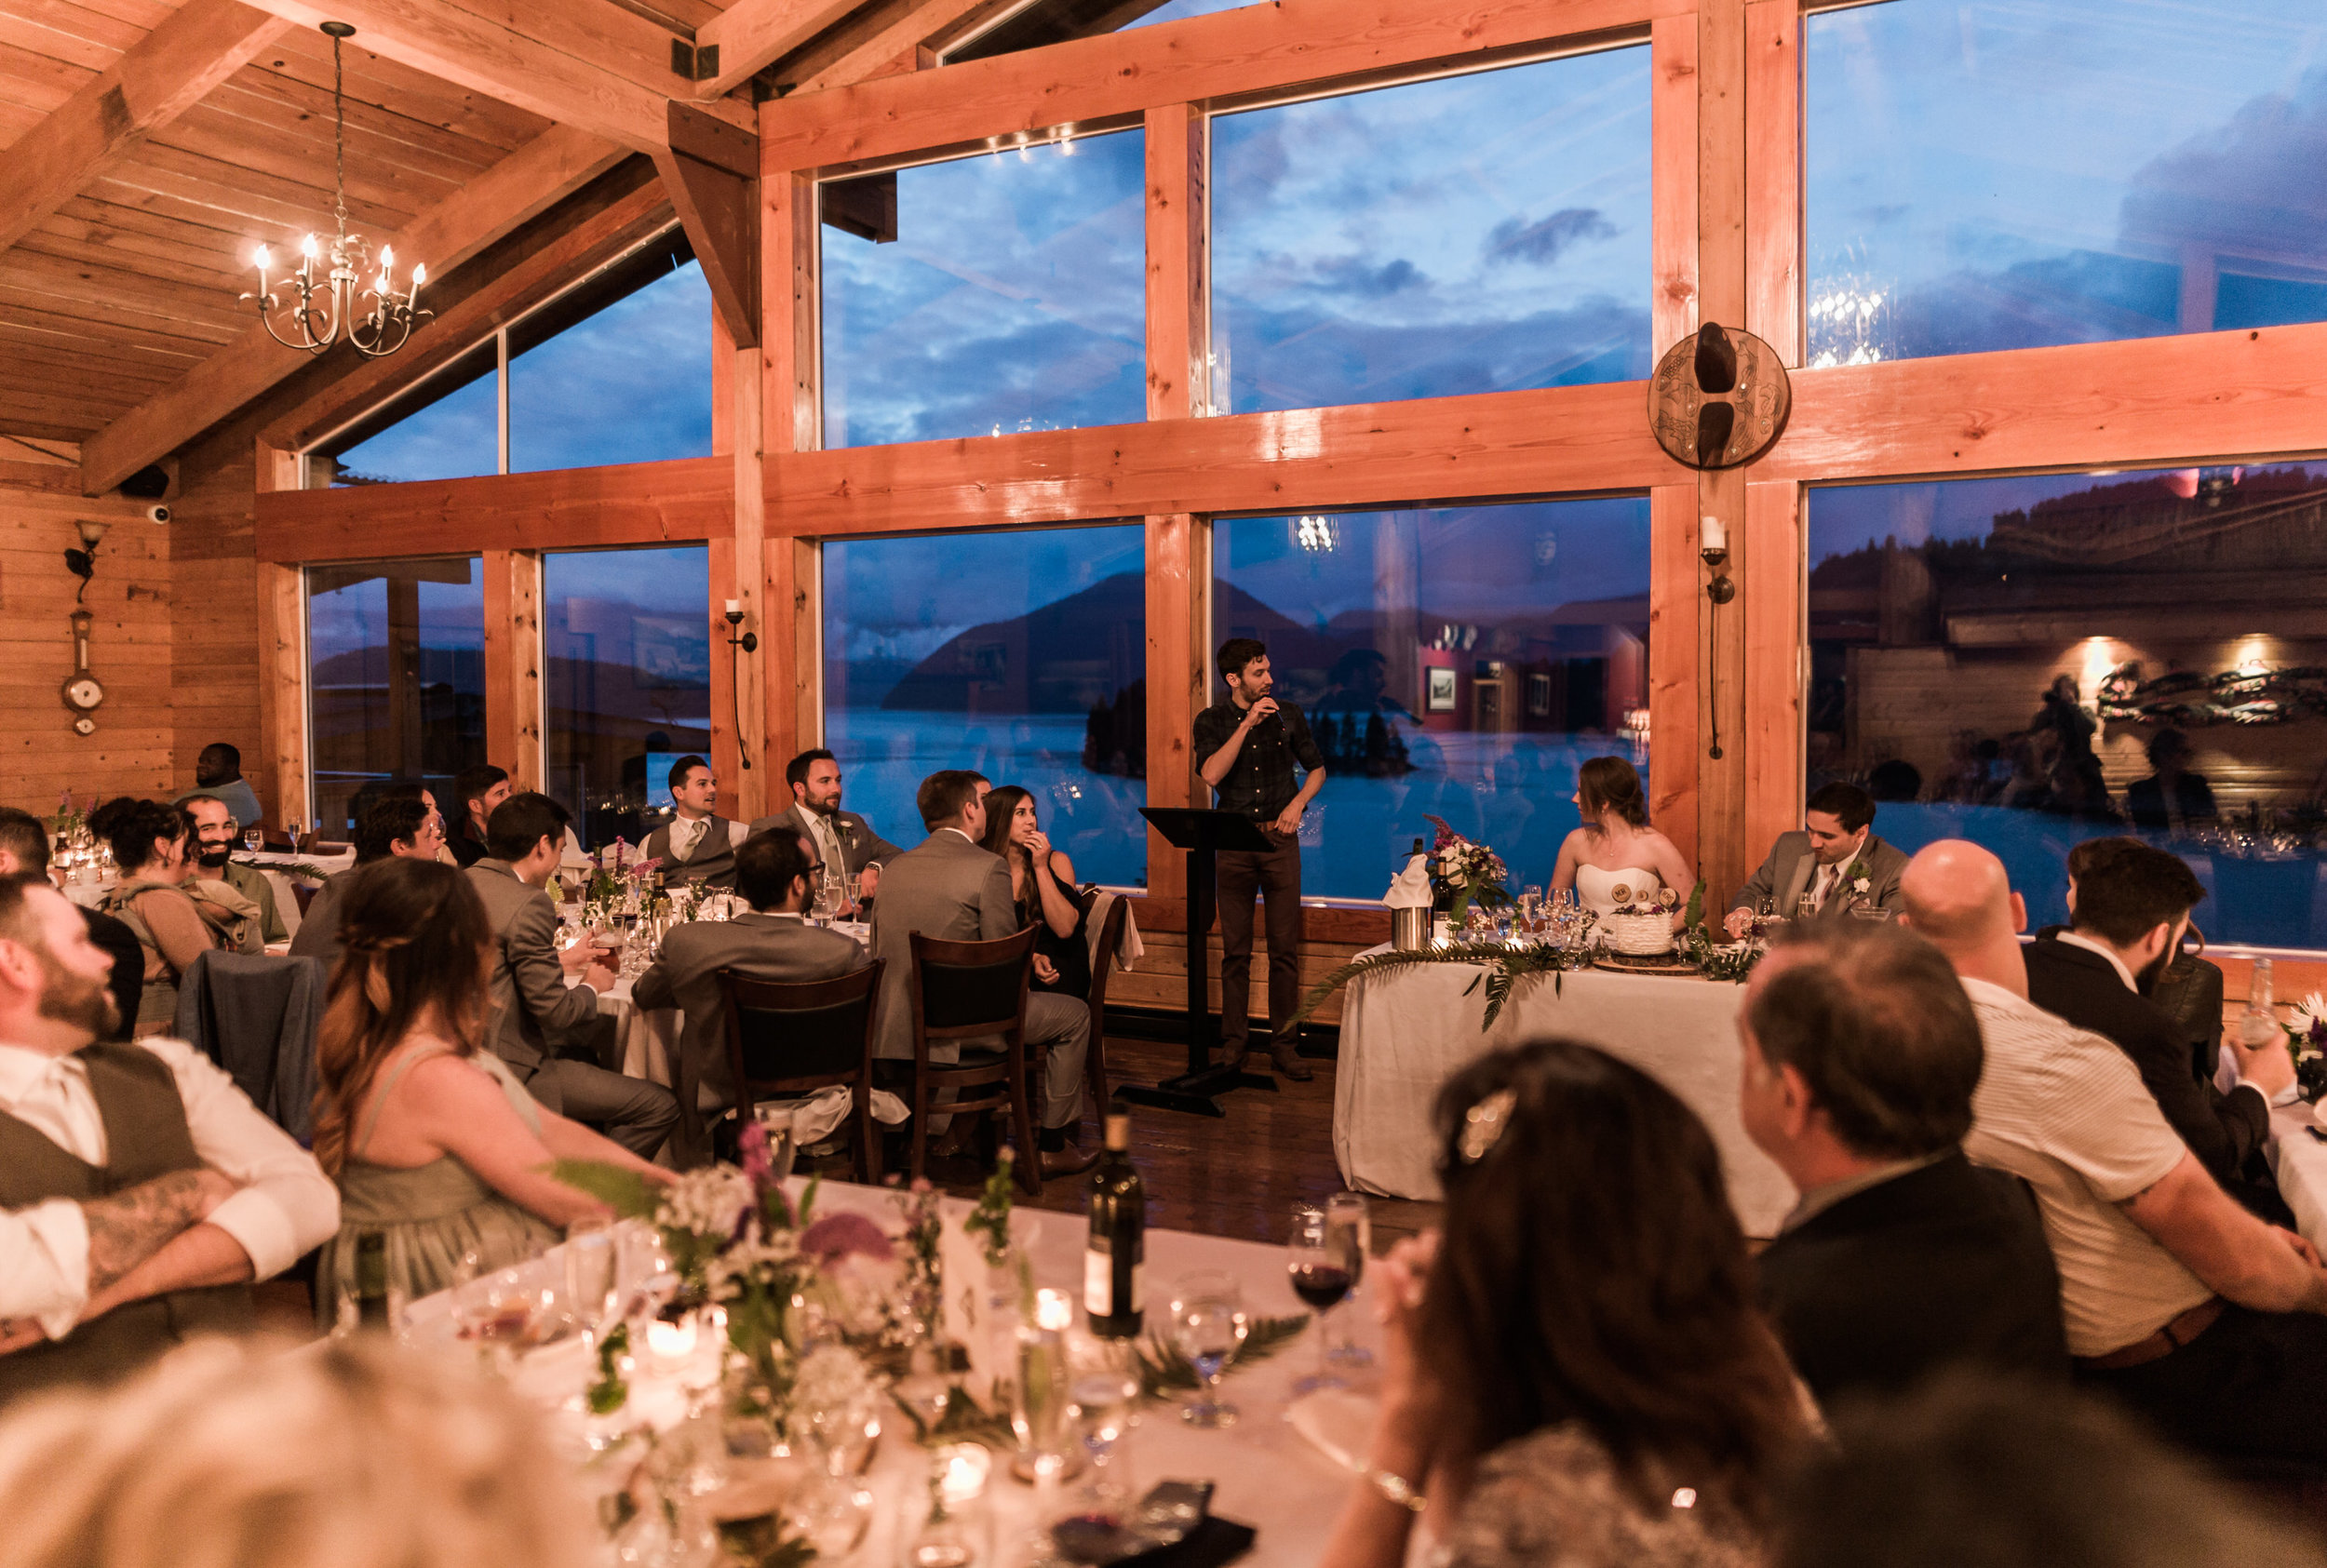 West Coast Wilderness Lodge Wedding Photos - Vancouver Wedding Photographer & Videographer - Sunshine Coast Wedding Photos - Sunshine Coast Wedding Photographer - Jennifer Picard Photography - IMG_1280.jpg